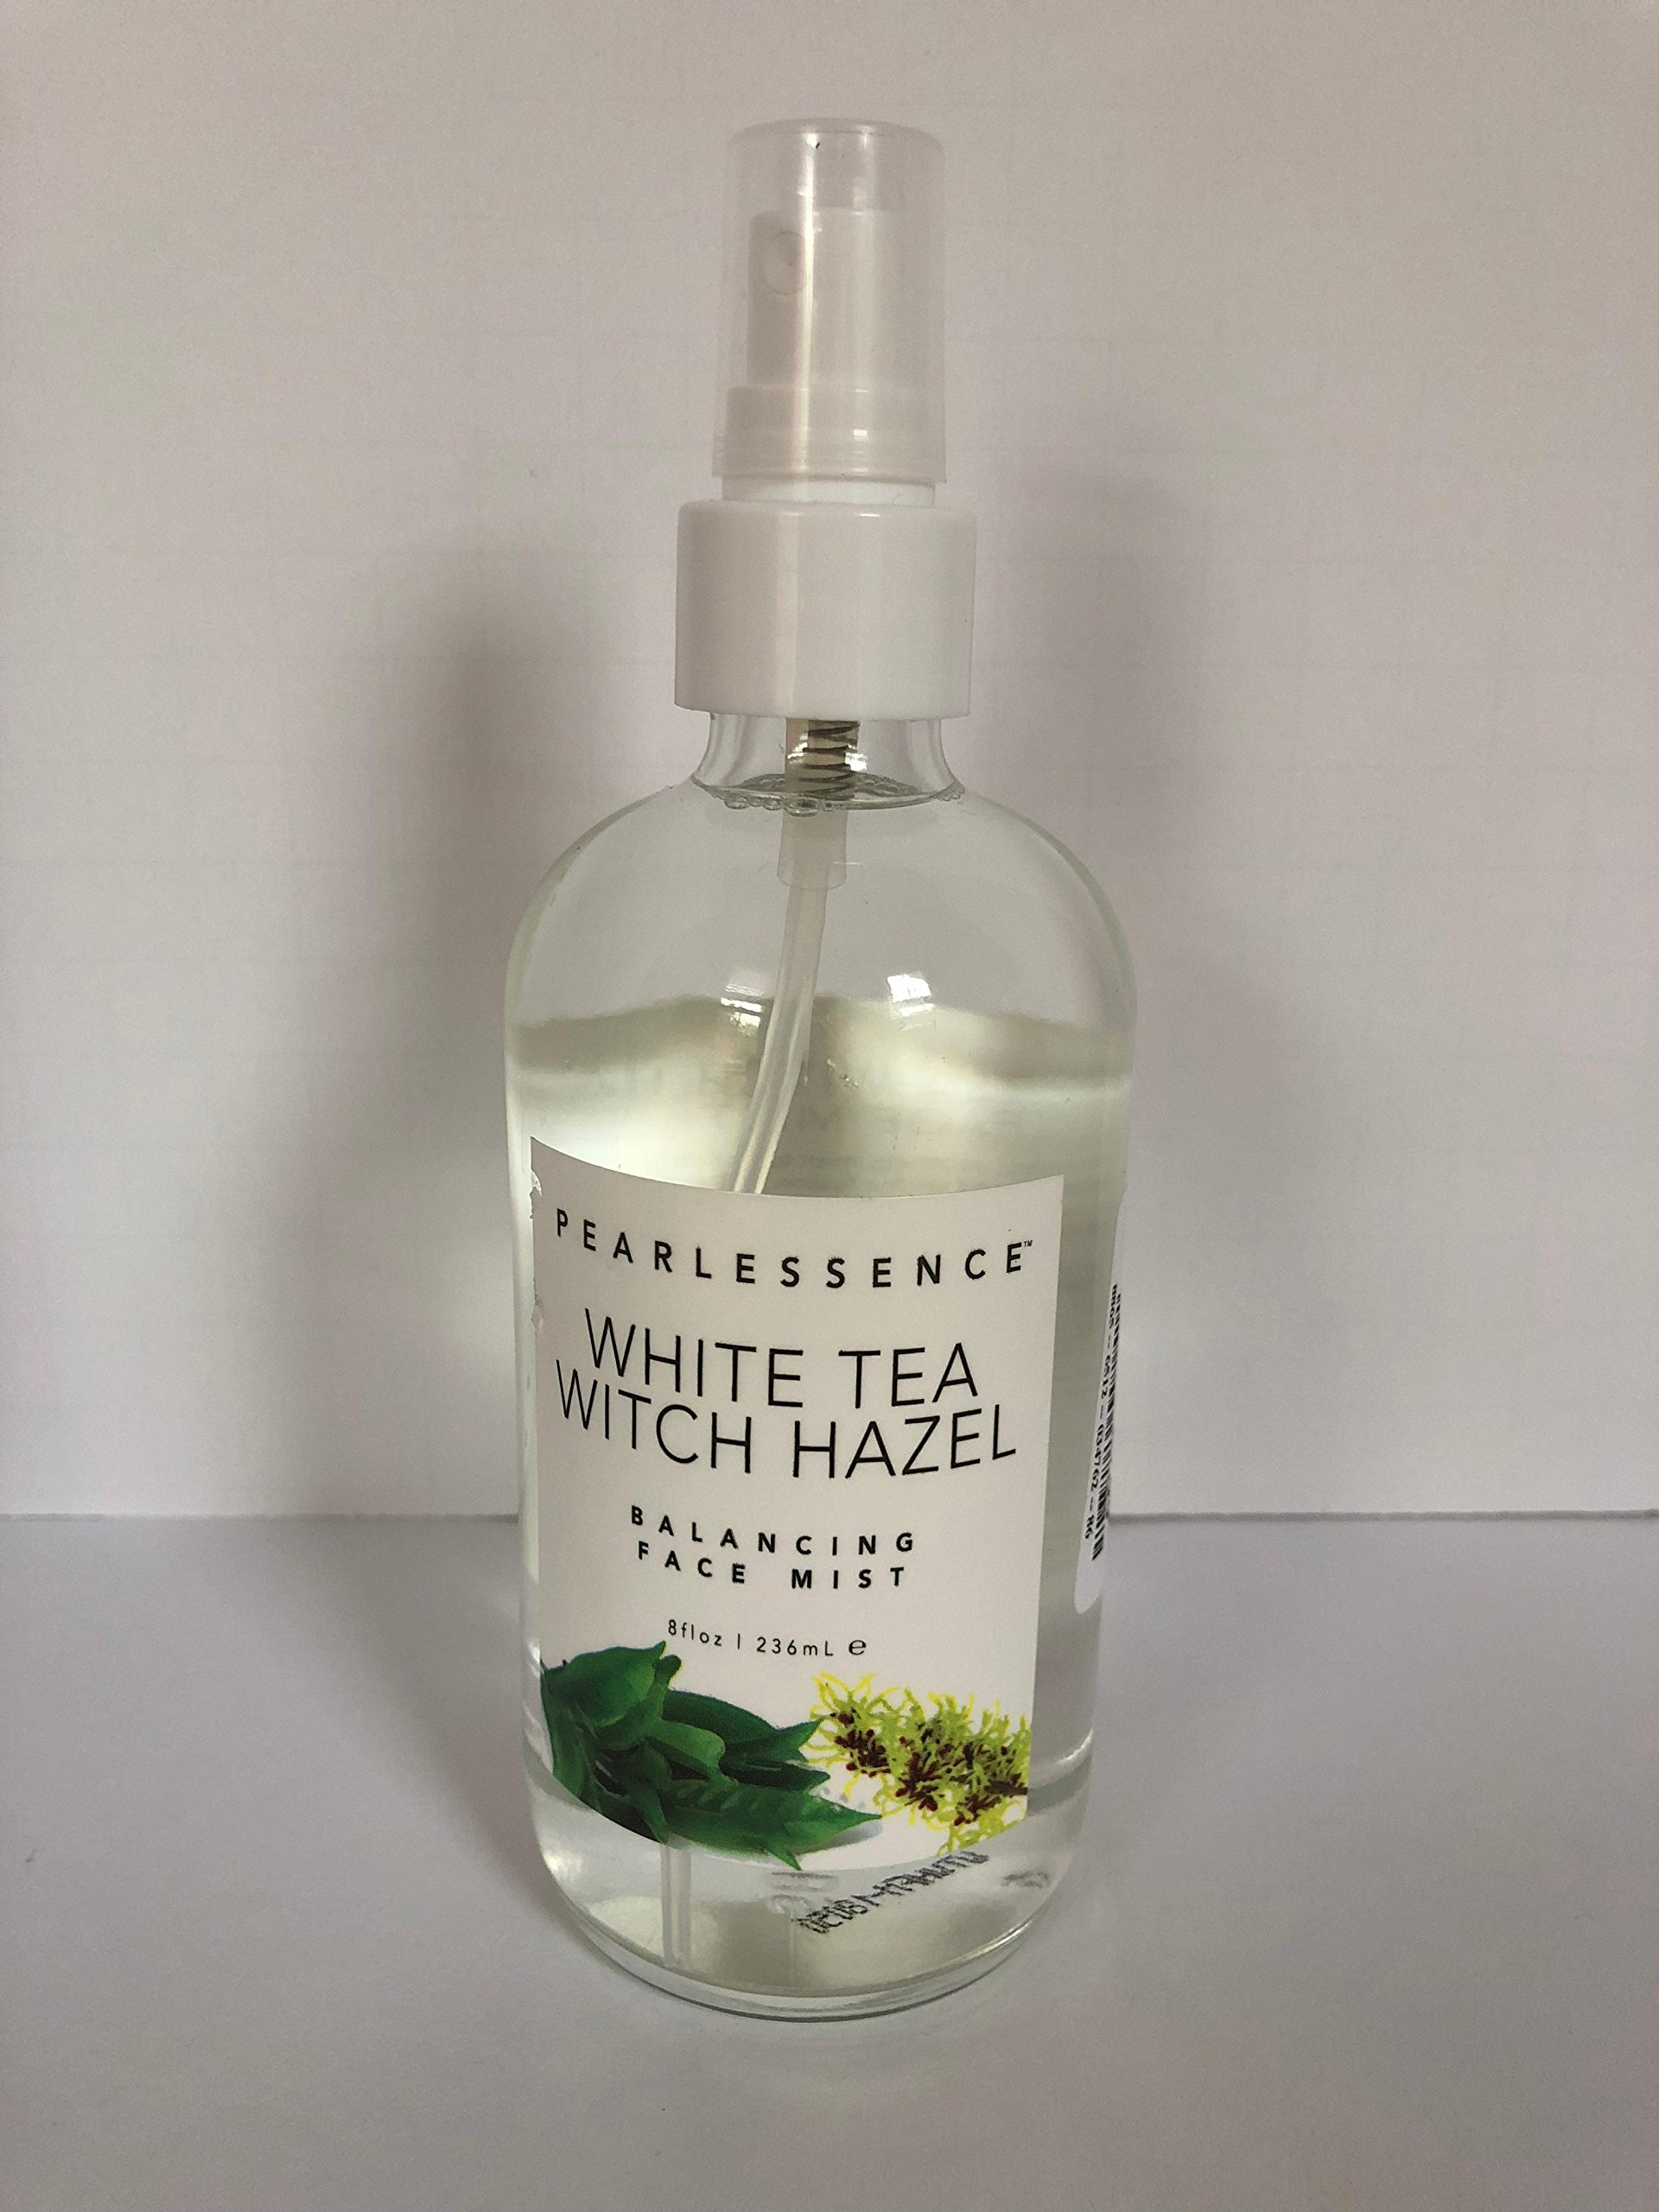 Pearlessence White Tea Witch Hazel Balancing Face Mist 8 Fl Oz